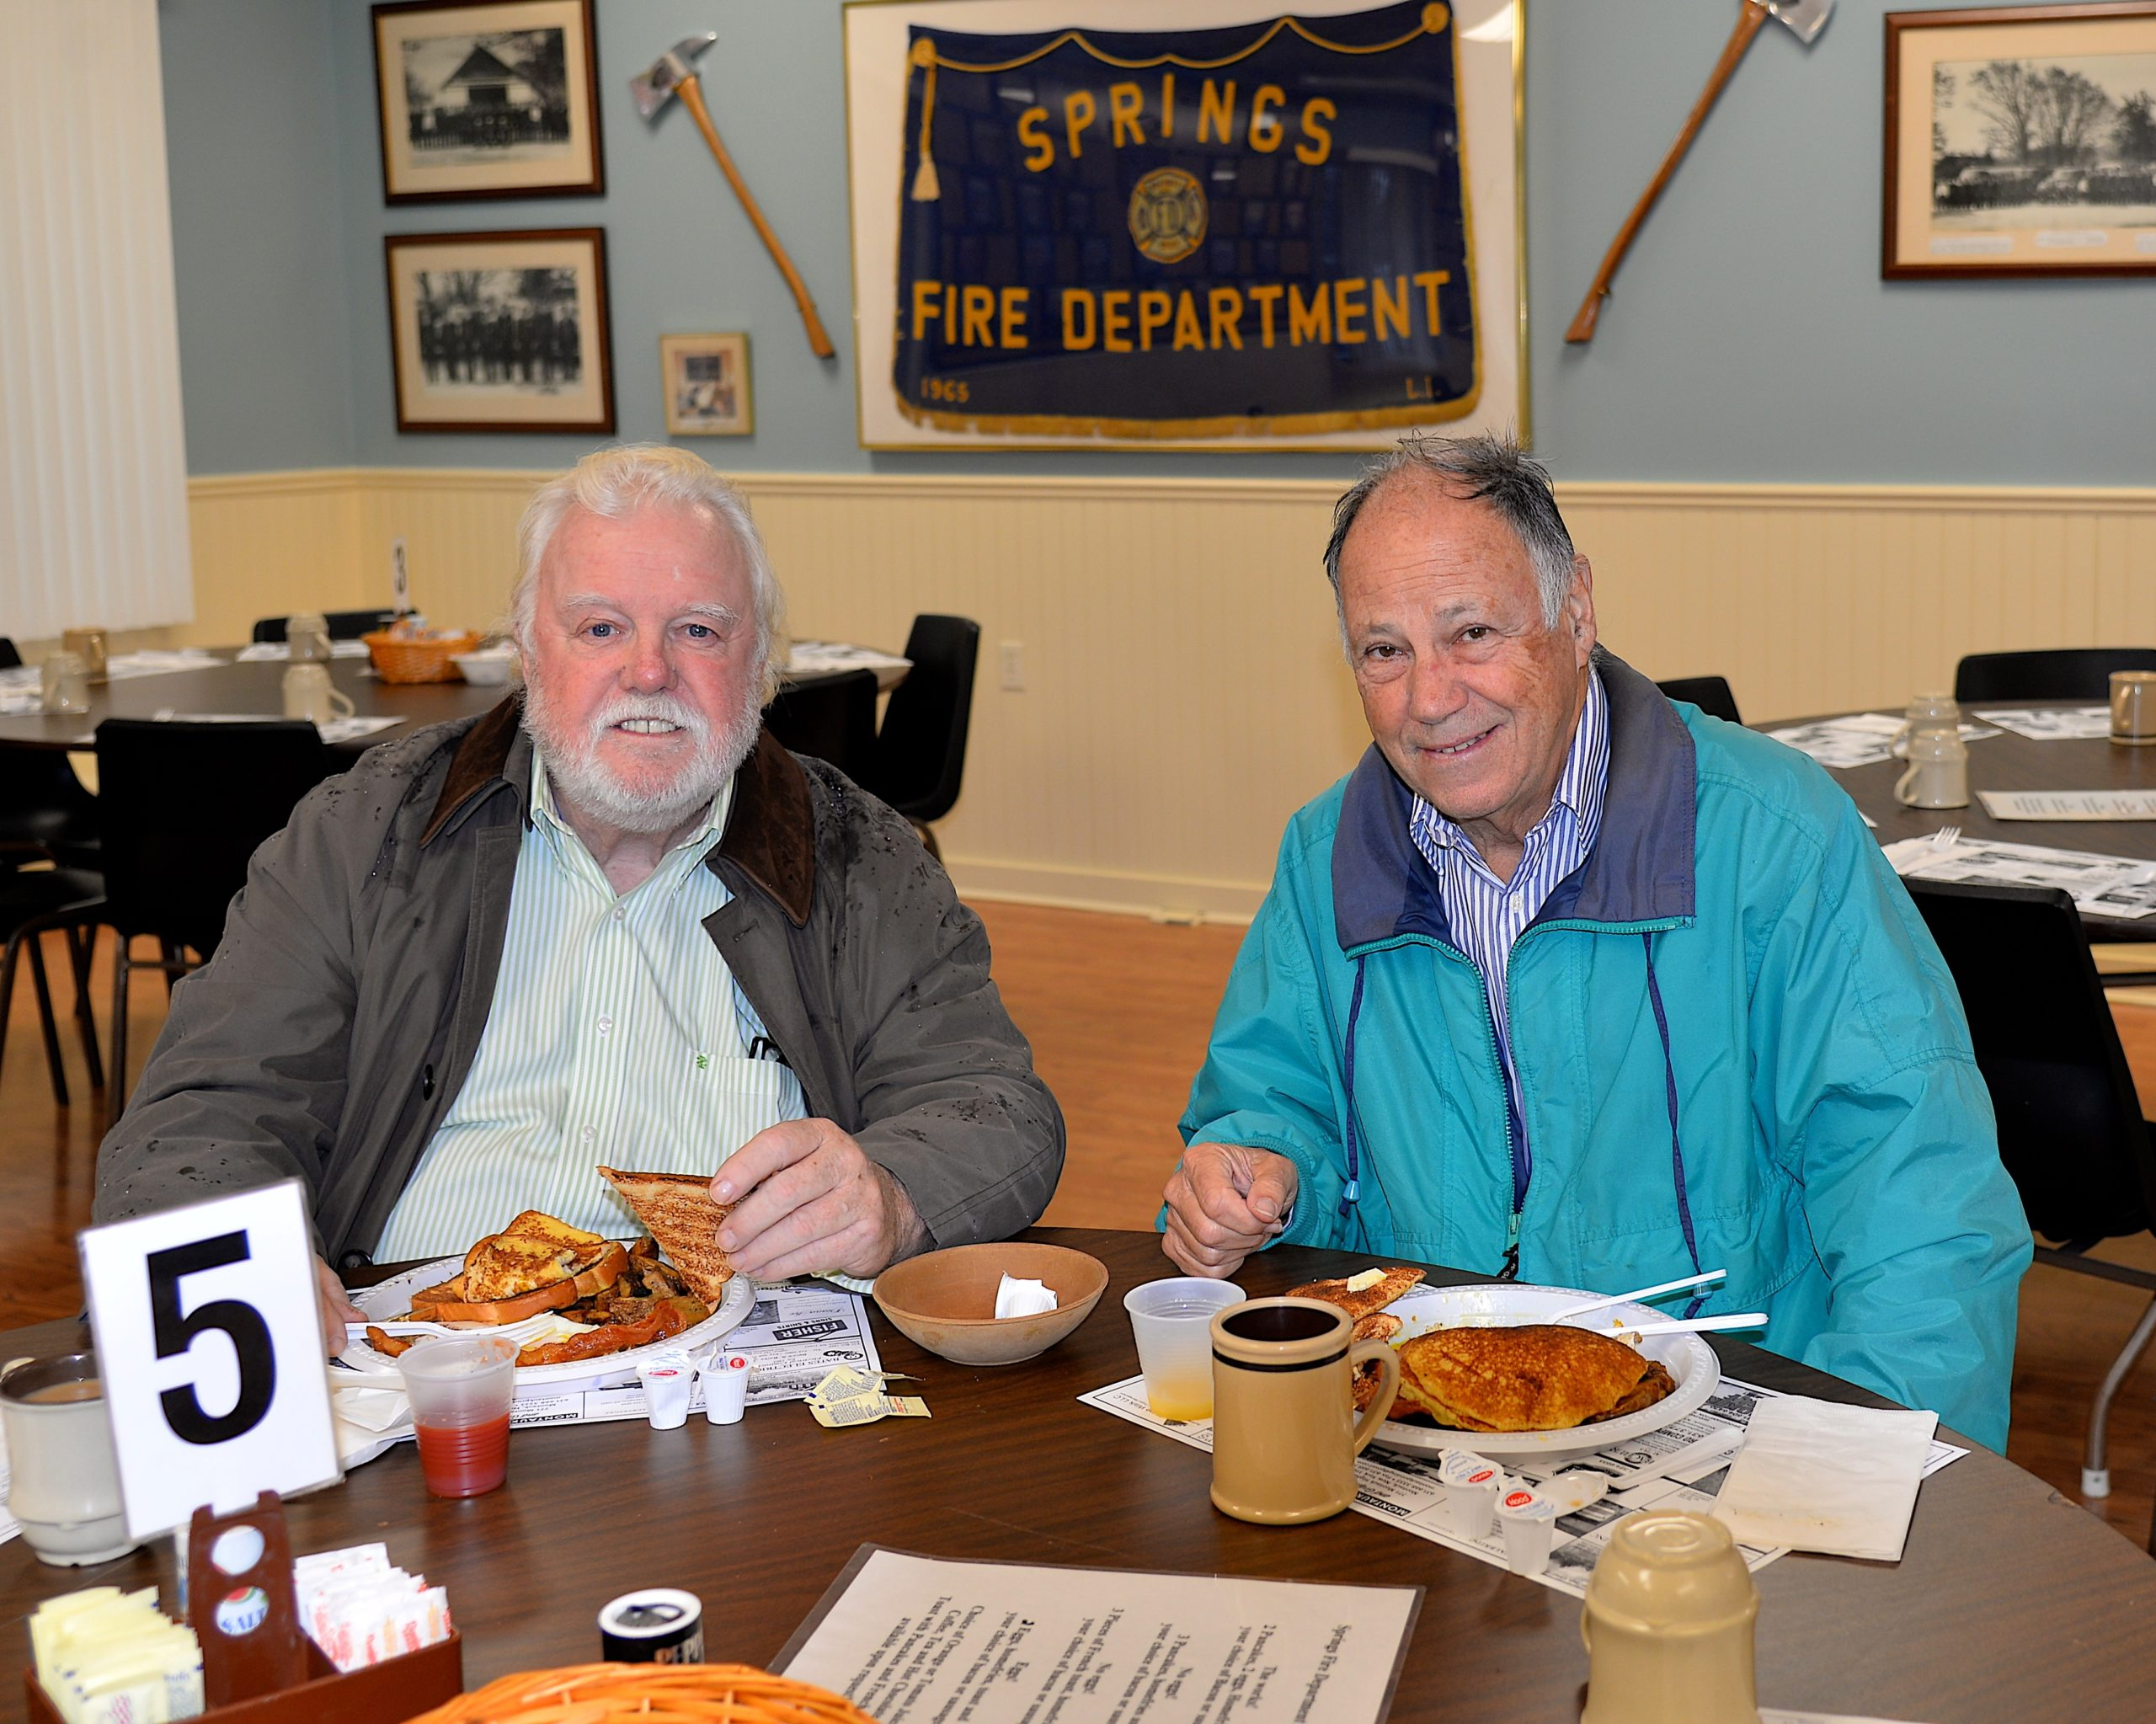 The Springs Fire Department held a pancake breakfast on  Sunday and Russ and Michael Bassett turned out for the fare. KYRIL BROMLEY